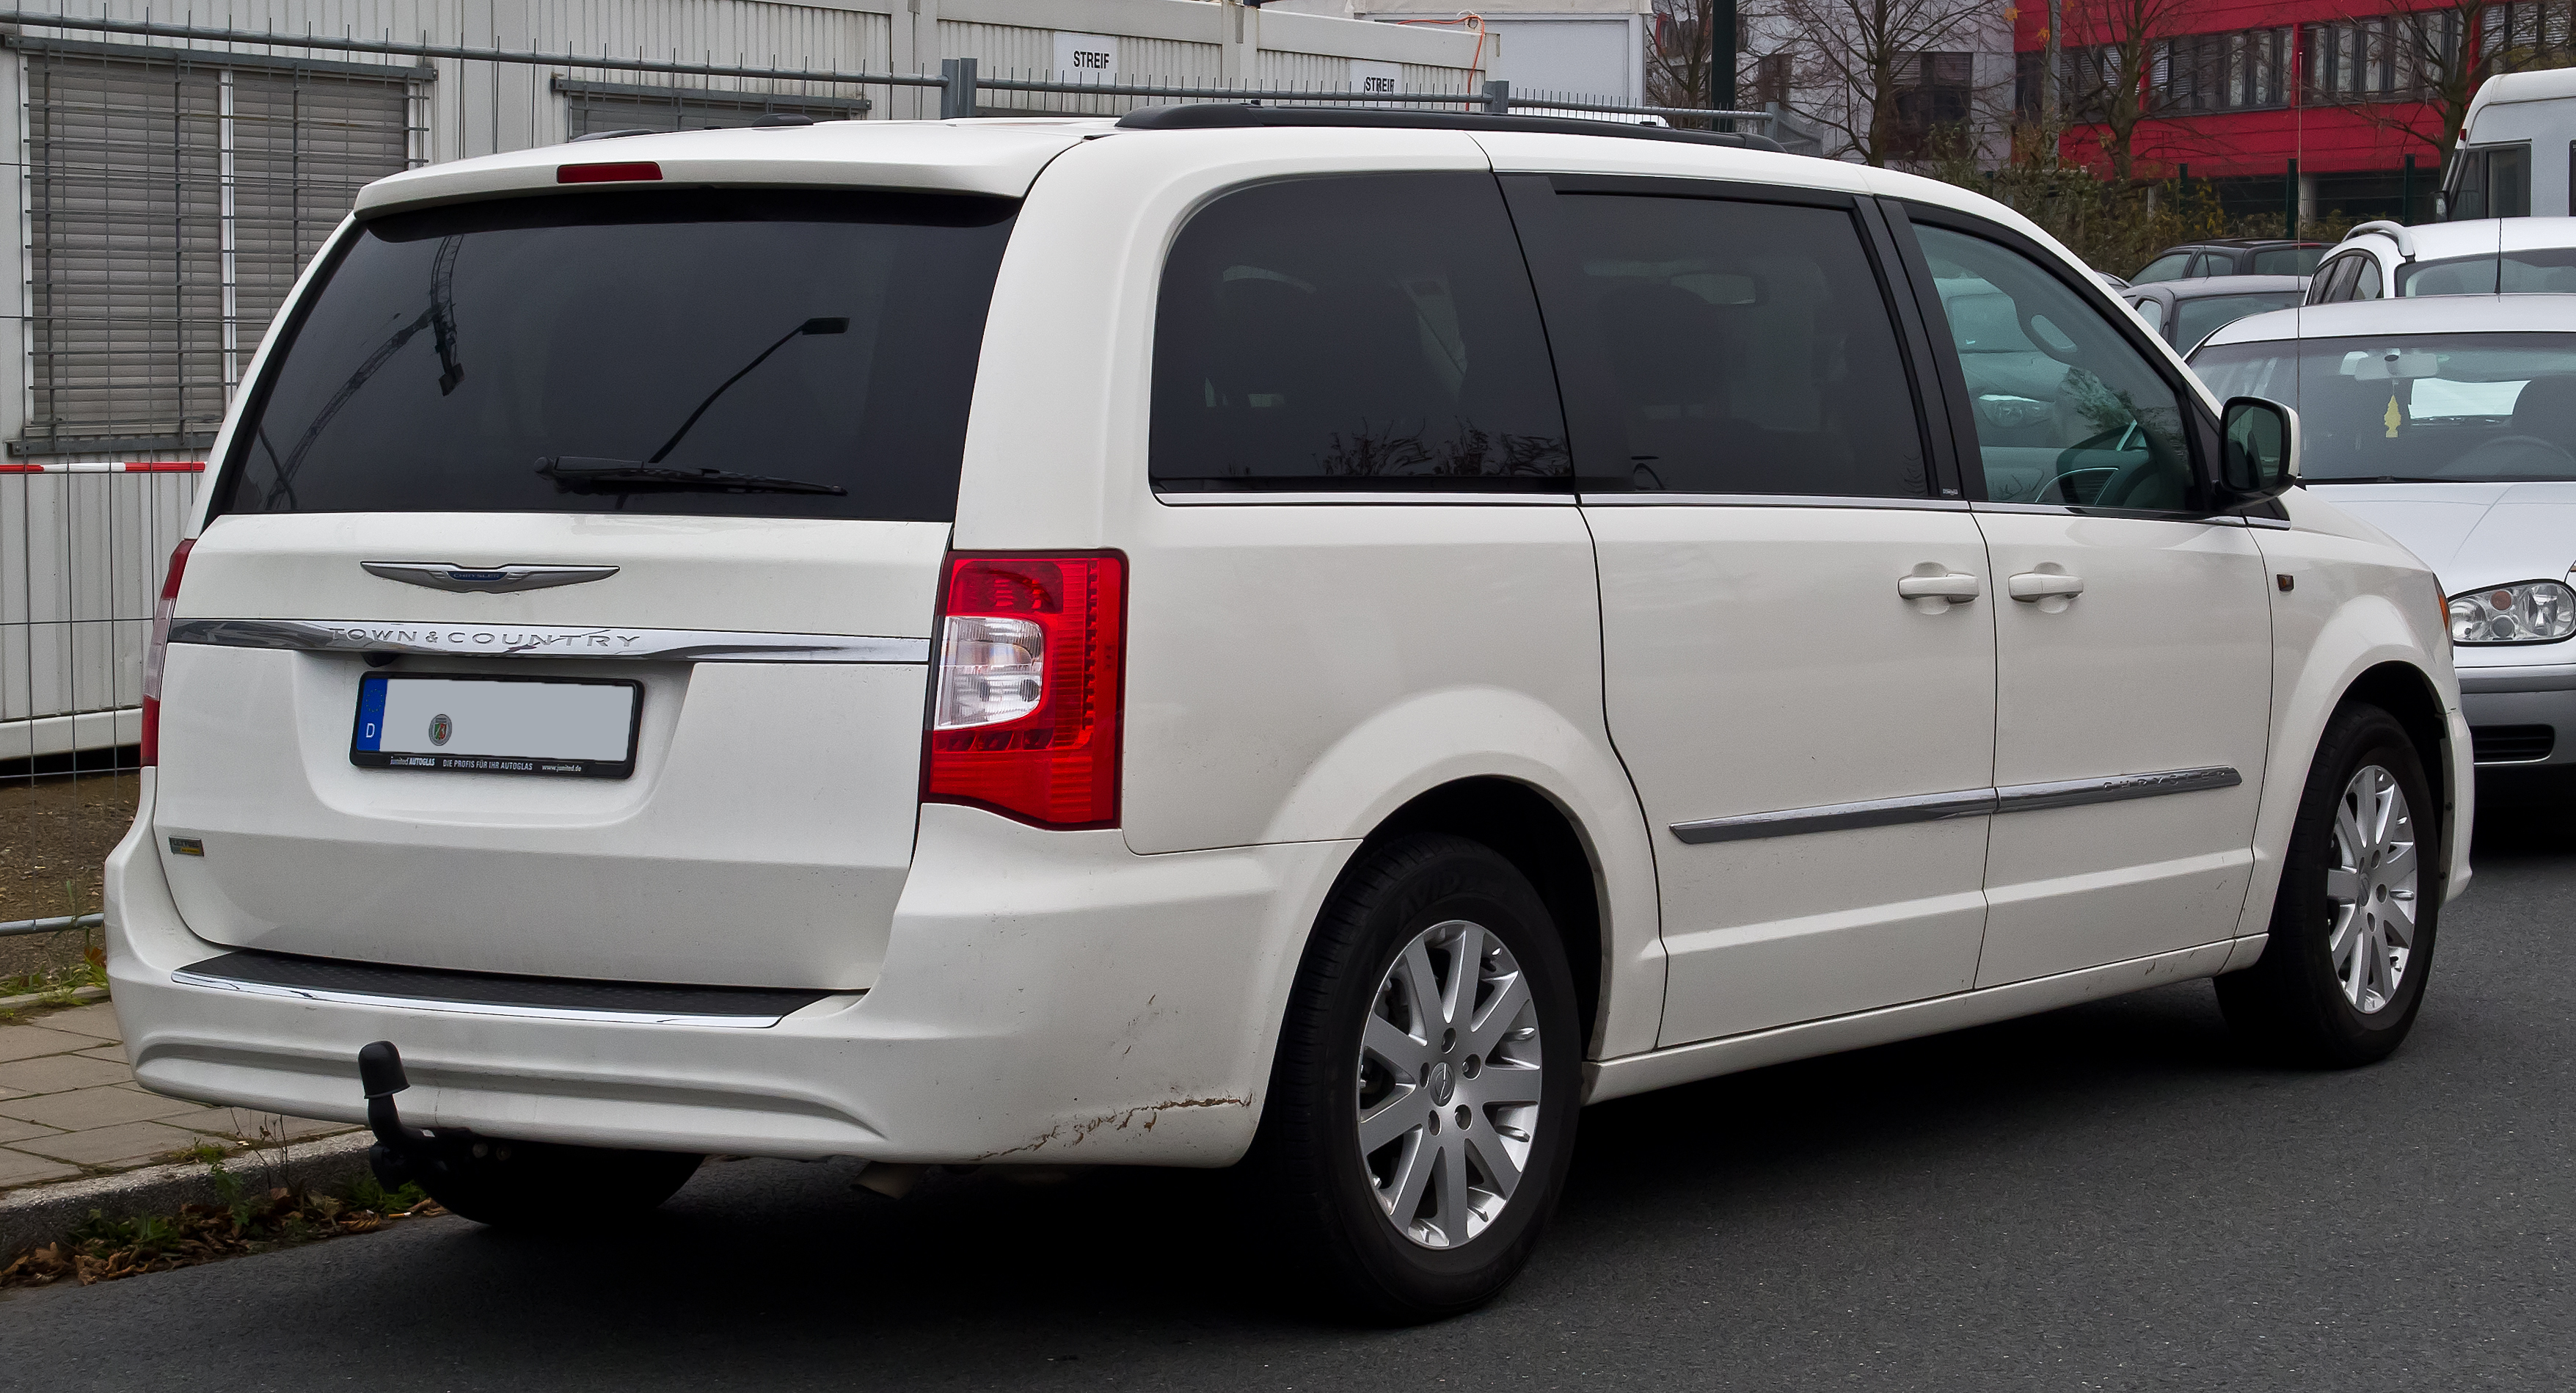 Chrysler_Town_%26_Country_3.6_V6_Touring_%28V%2C_Facelift%29_%E2%80%93_Heckansicht%2C_30._November_2014%2C_D%C3%BCsseldorf chrysler town & country wikiwand 2007 dodge grand caravan sliding door wiring harness at alyssarenee.co